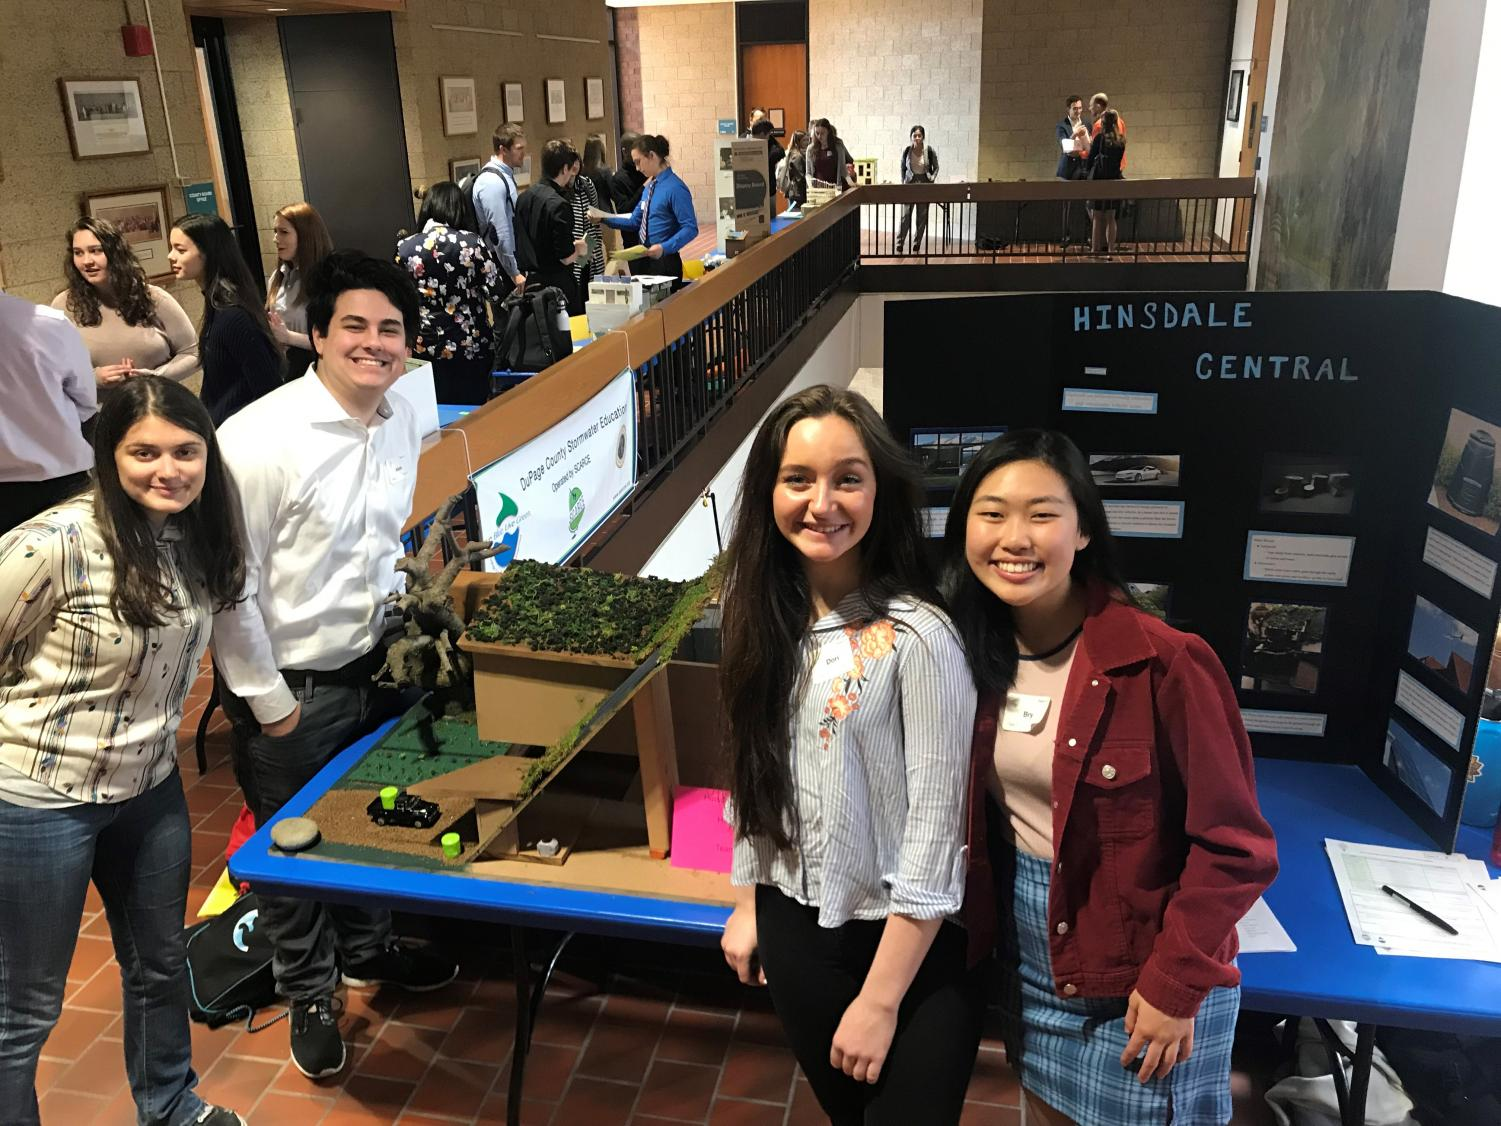 Ecology members, senior Alek Malone and juniors Emma Baroni, Dori Burkhart, and Bry Lee, recently won an Honorable Mention for their model building for its stormwater system. SCARCE held the competition on April 16 and announced winners on April 26, with all participants receiving a certificate and cash prize.